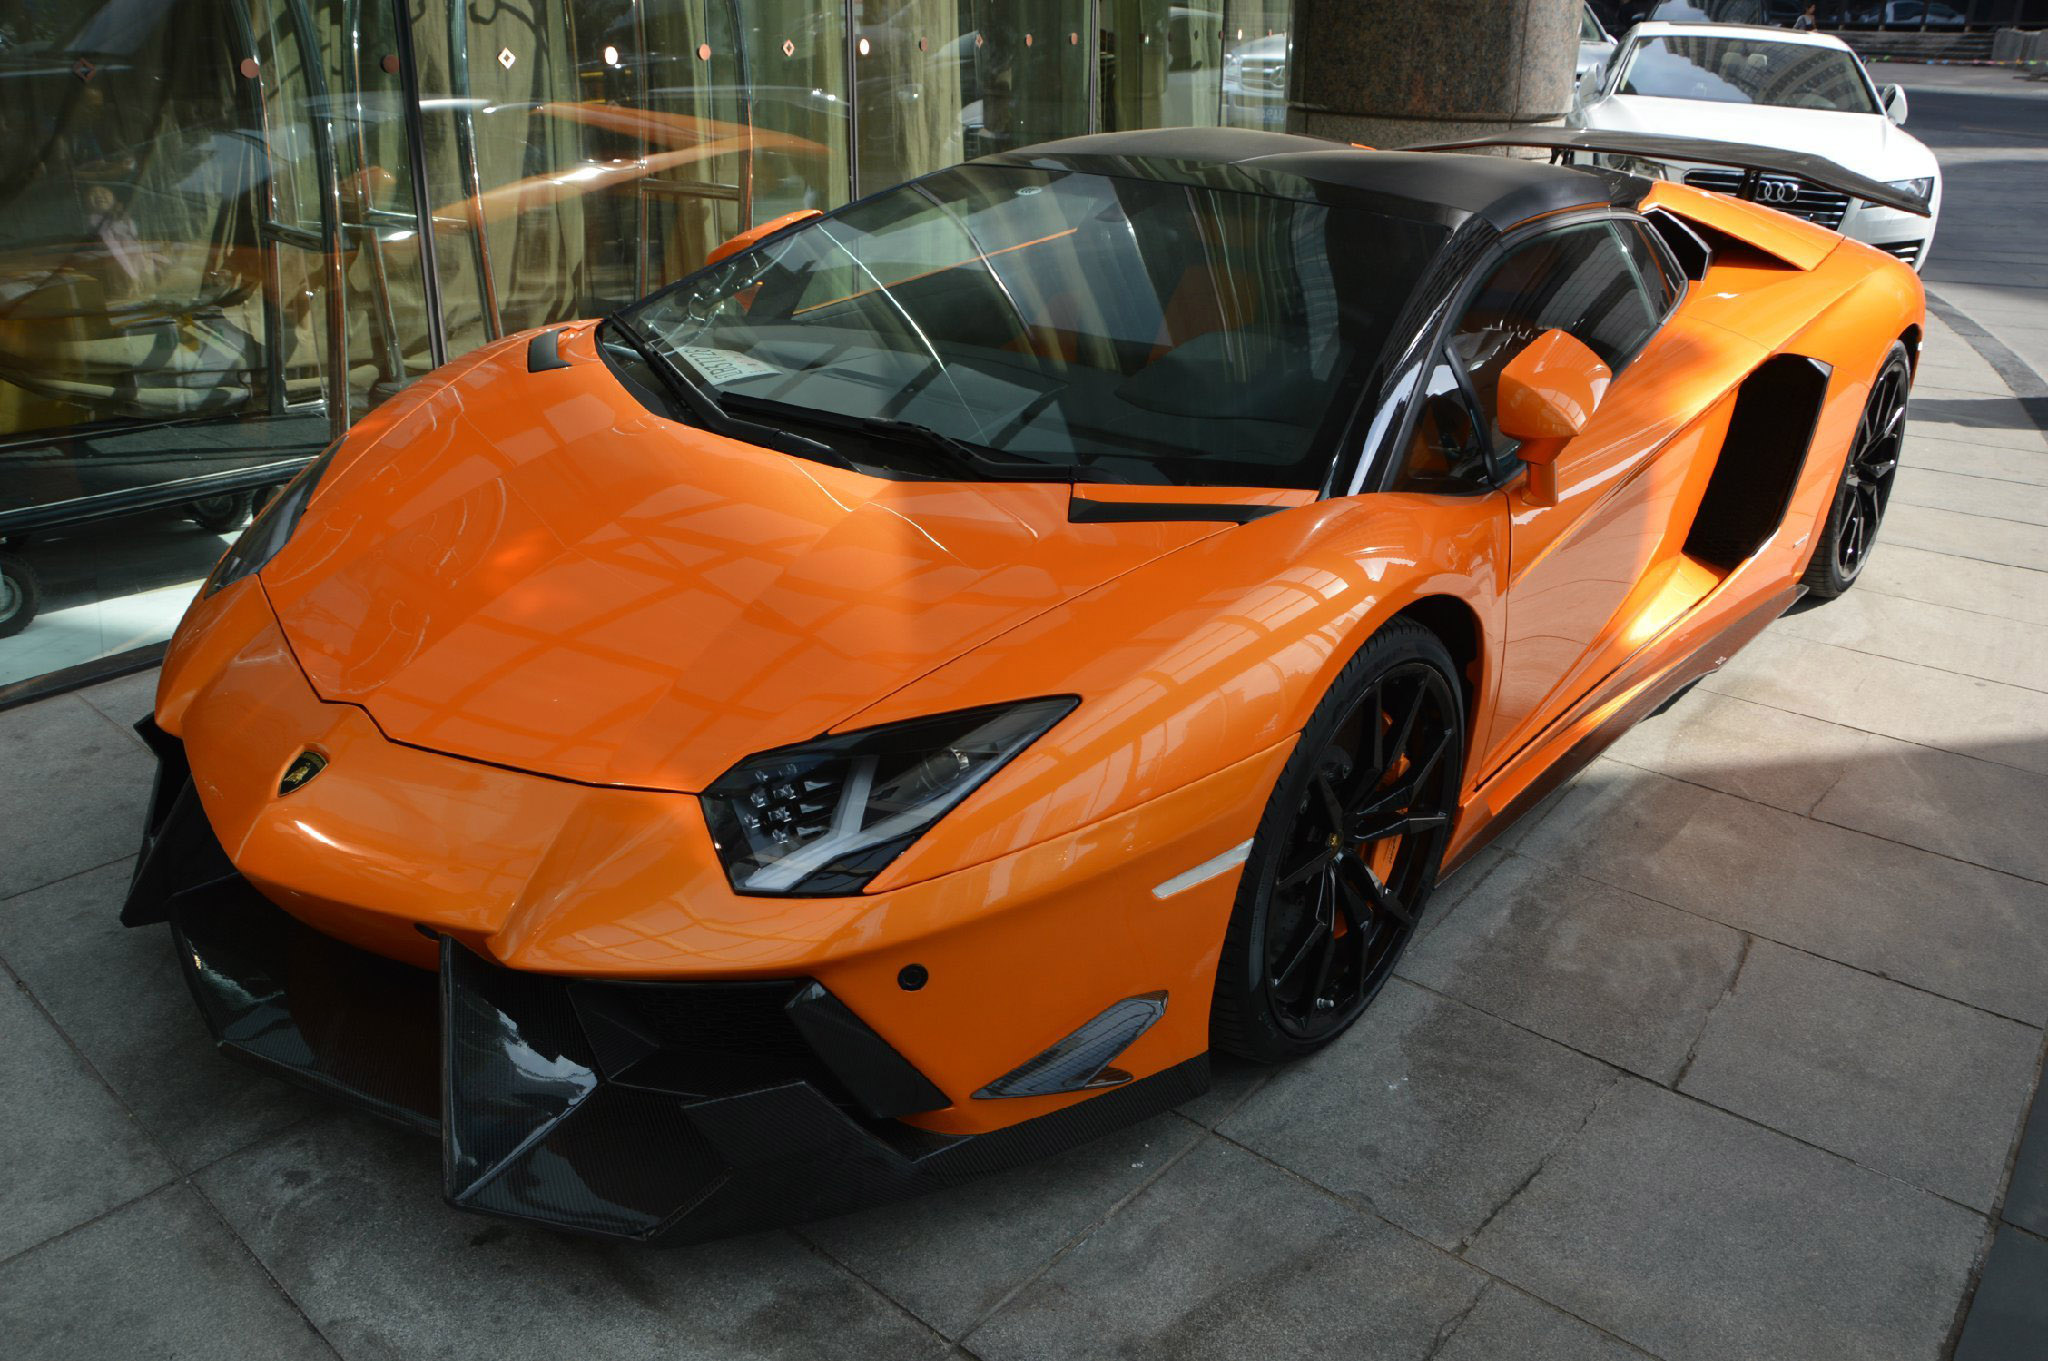 Dmc Shows Tuned Lamborghini Aventador Lp700 4 Roadster Sv